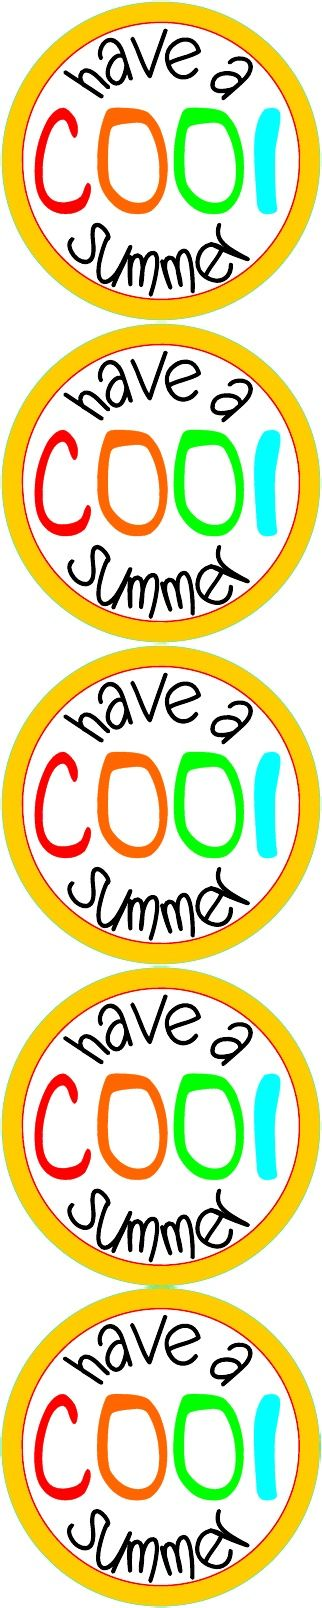 Resource image for have a cool summer printable